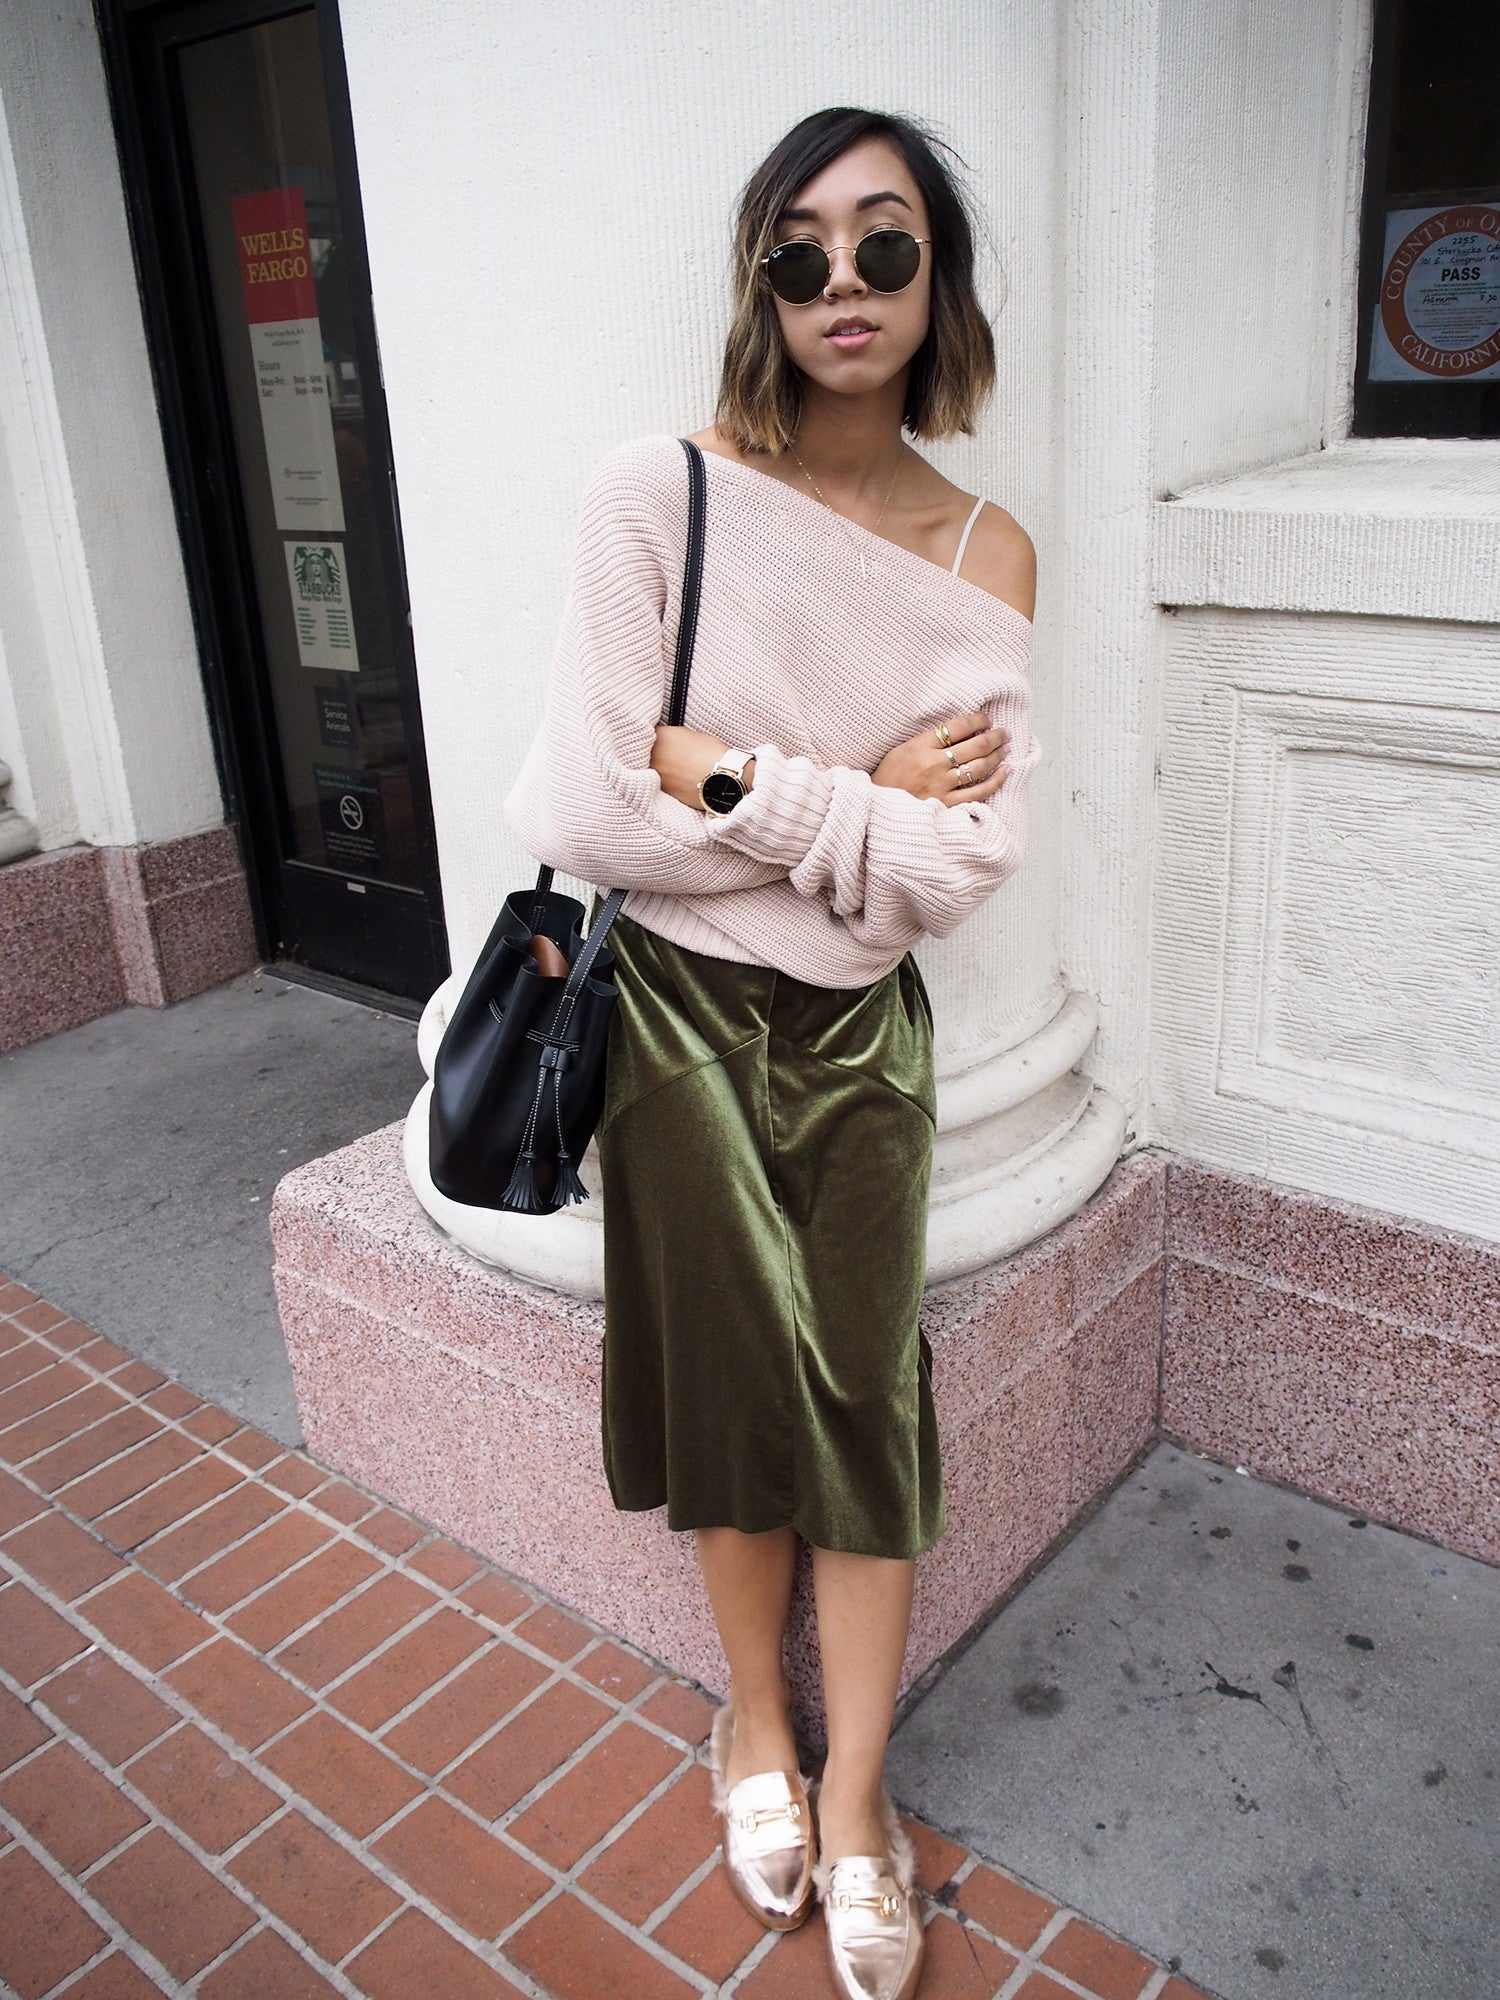 Green Velvet and Blush Knits by @shhtephs